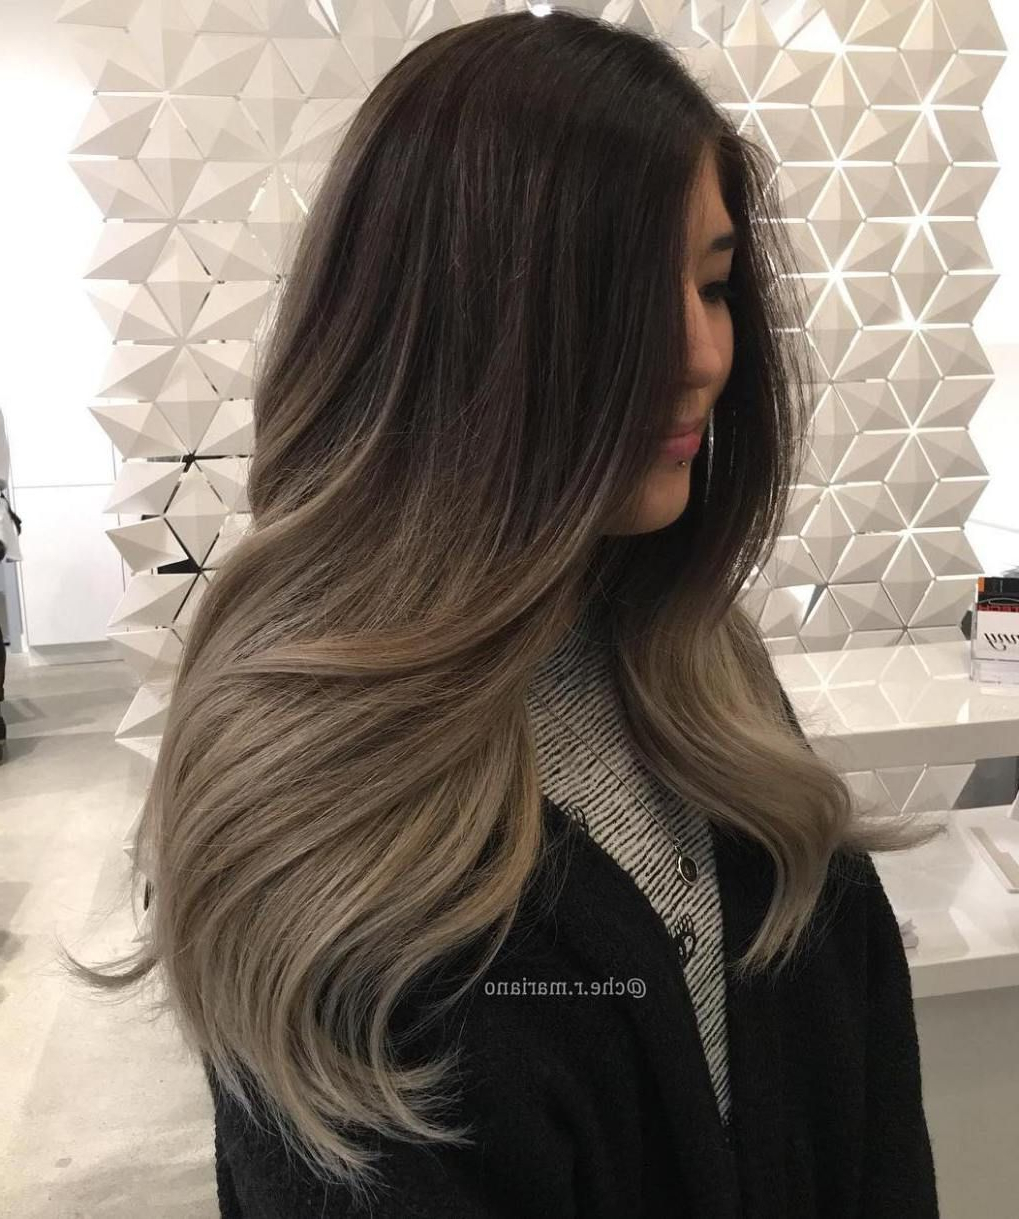 20 Head Turning Haircuts And Hairstyles For Long Thick Hair In 2019 Throughout Most Popular Long Thick Black Hairstyles With Light Brown Balayage (Gallery 12 of 20)